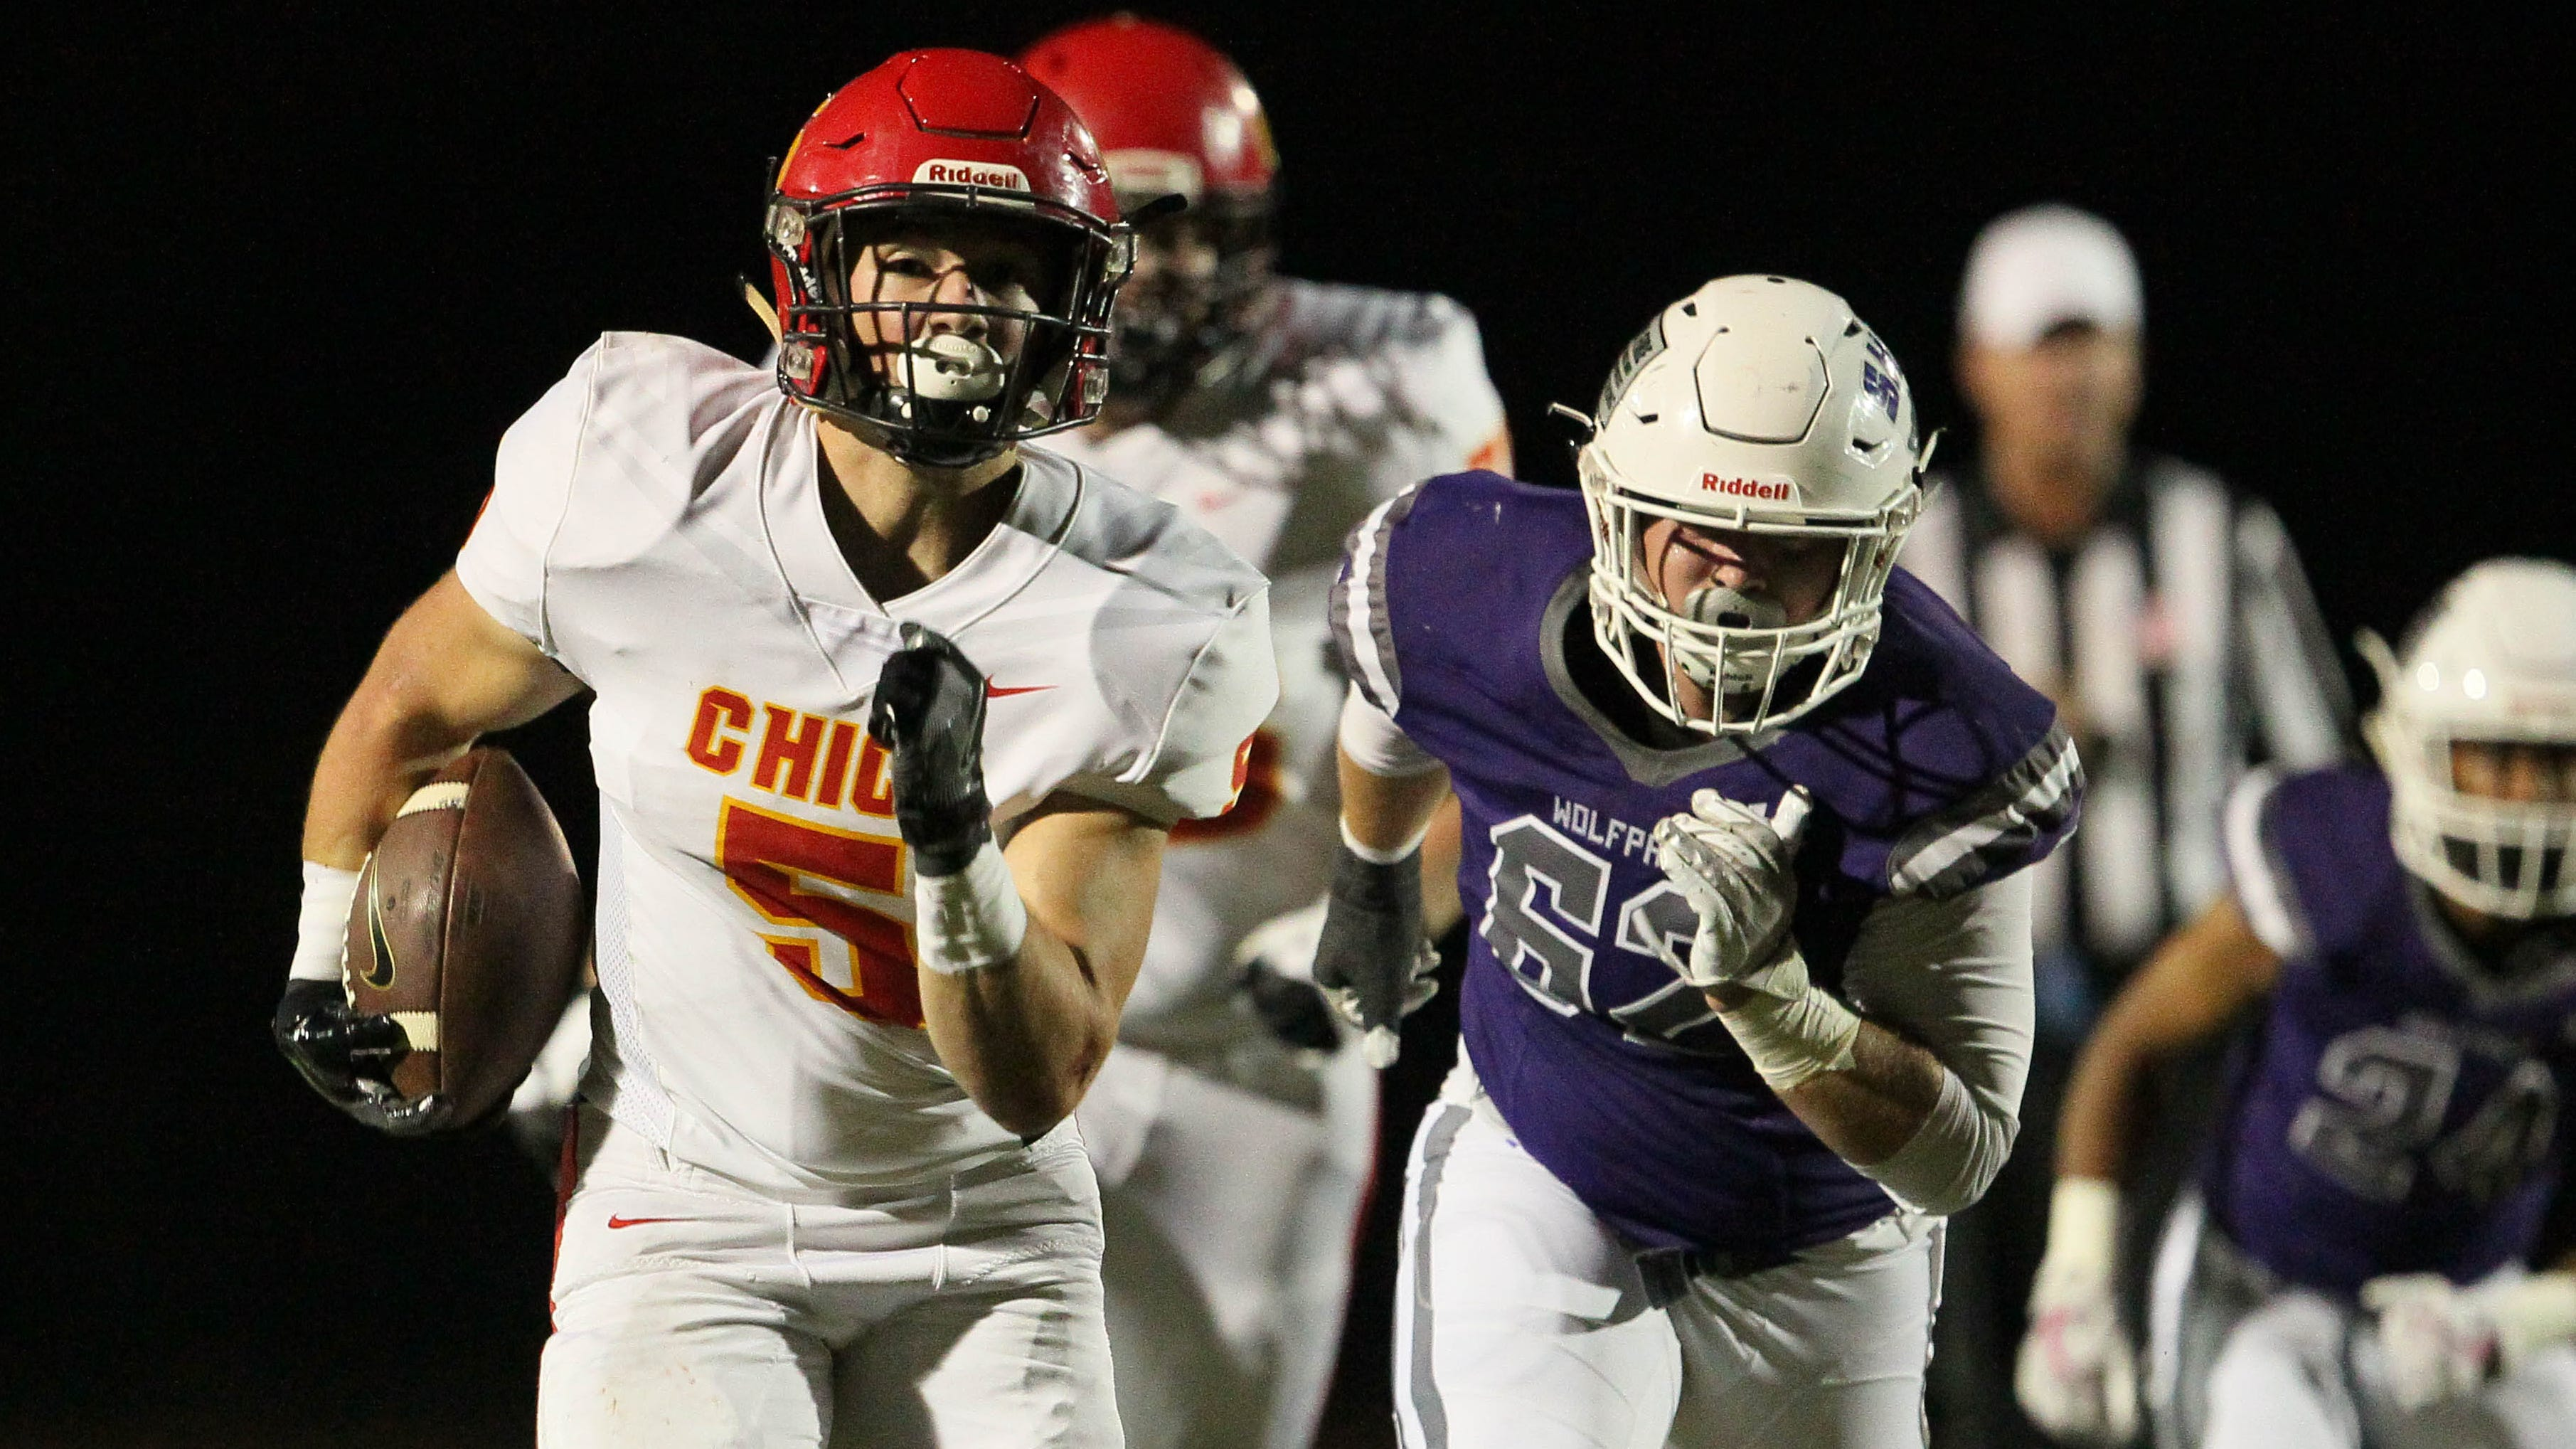 Chico's Ty Walker (5) heads toward the end zone to score a touchdown in the 1st quarter against Shasta's Logan Thibodeau (62). Chico won the game, 37-0, at Shasta High on Friday, Sept. 21.